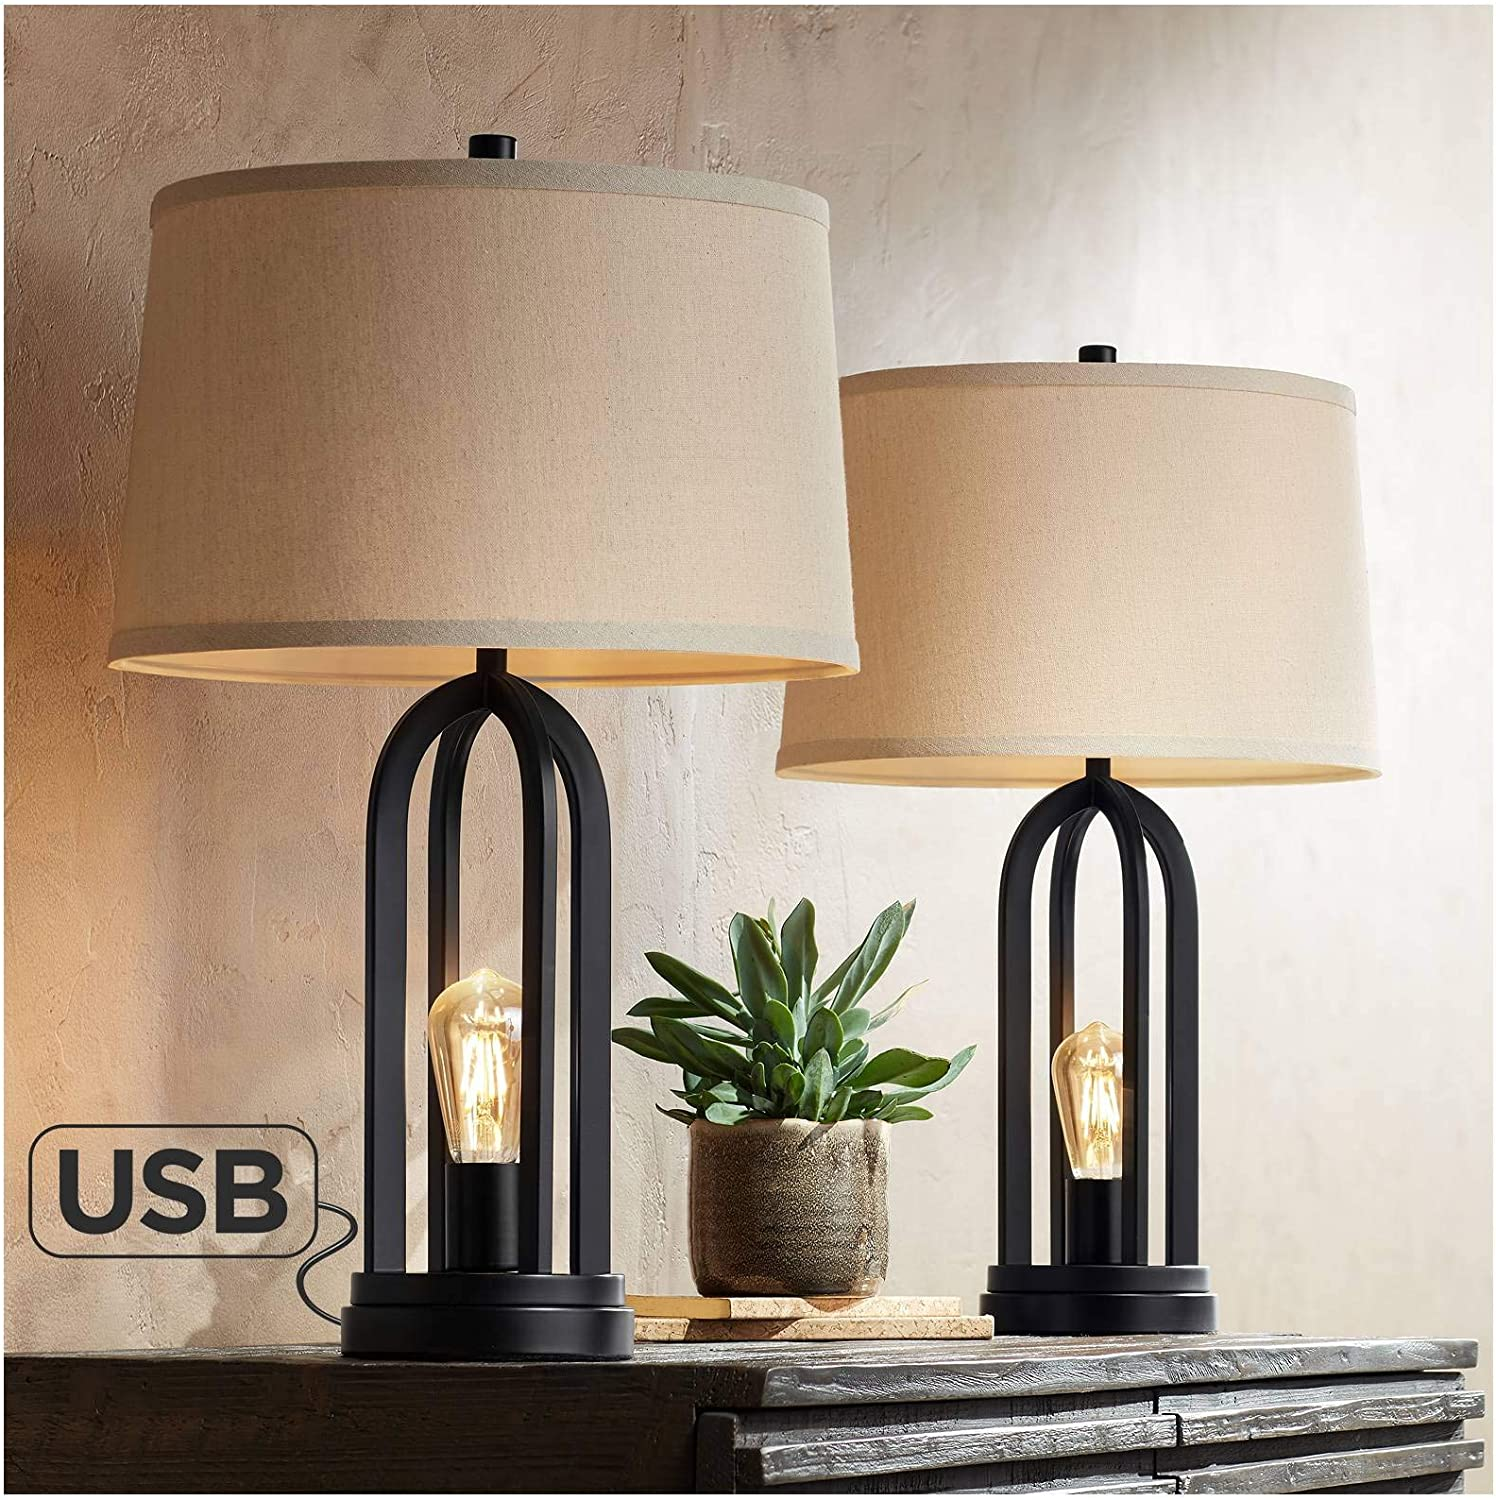 Marcel Modern Farmhouse Industrial Black Table Lamps Set Of 2 With Nightlight Led Usb Port Linen Shade Decor For Living Room Bedroom House Bedside Nightstand Home Office Family 360 Lighting